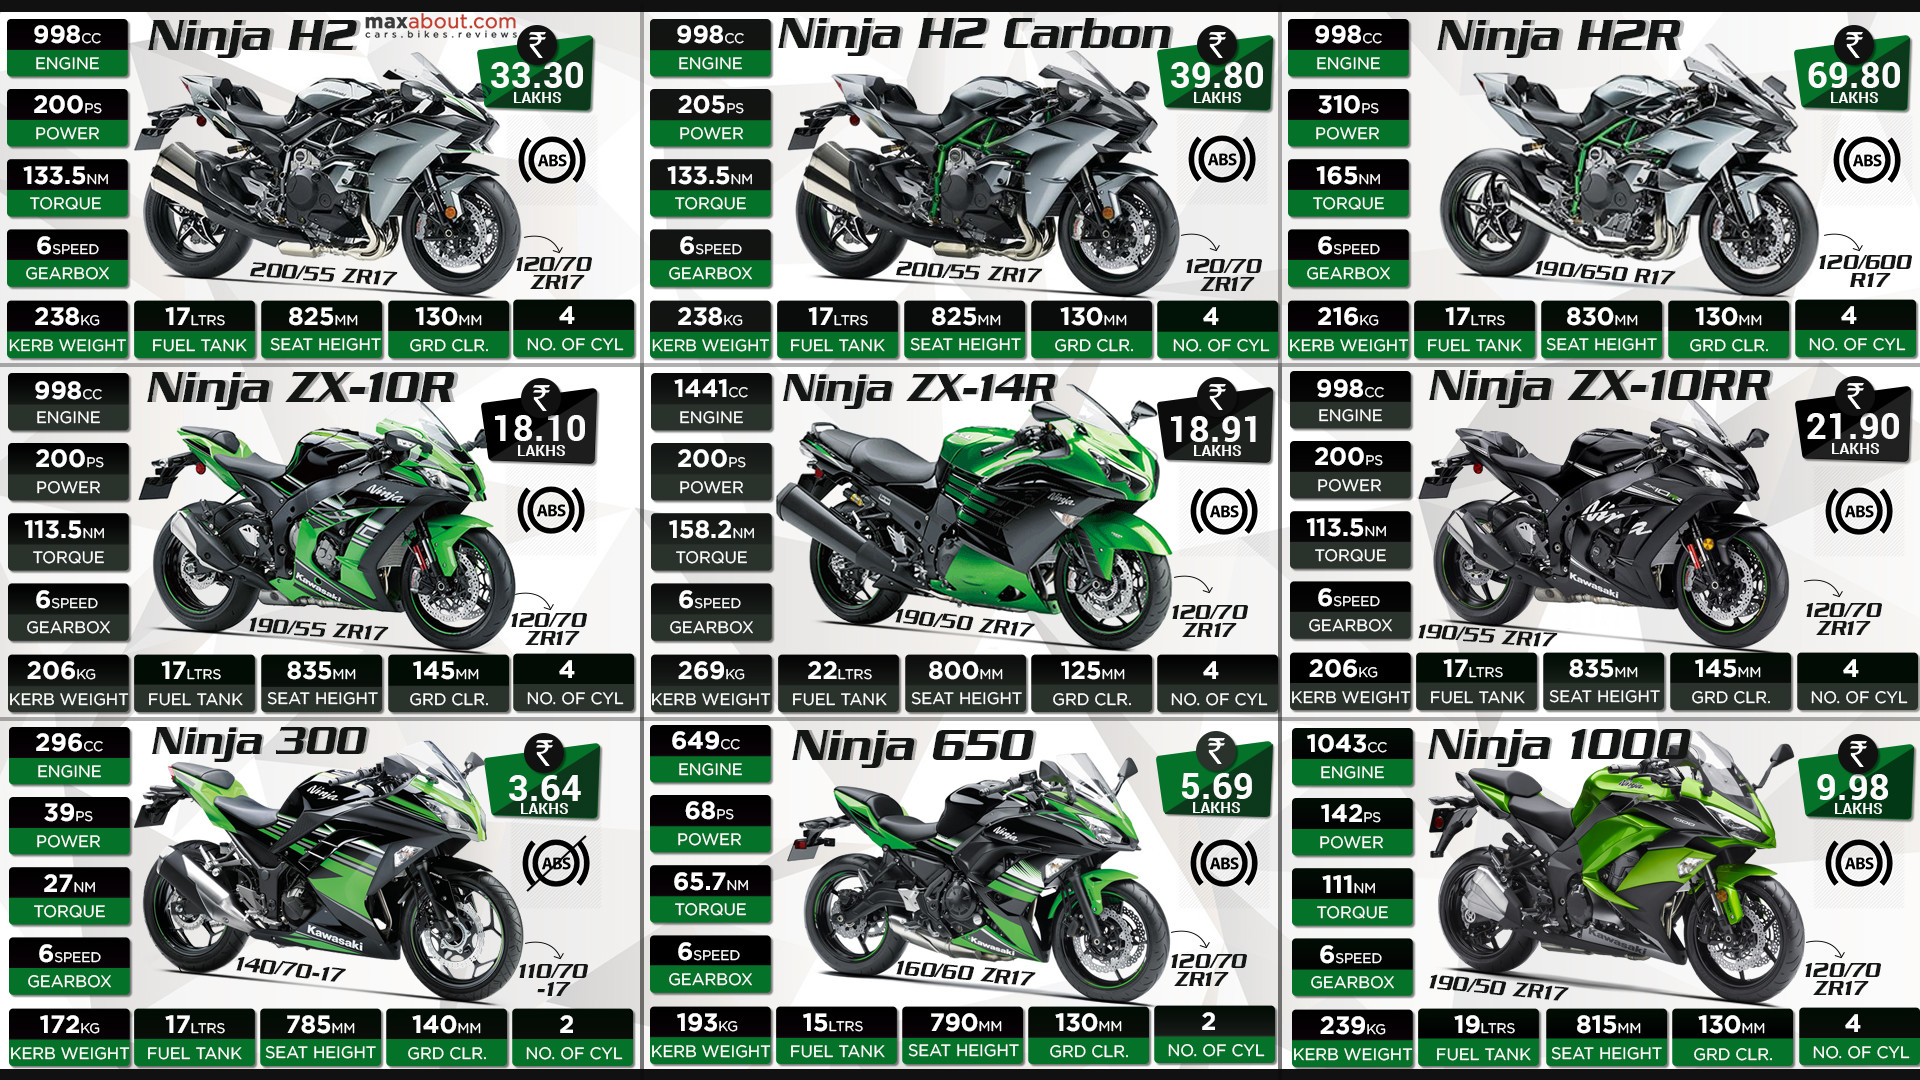 3000x1850 Related Wallpapers Kawasaki Ninja H2r Wallpaper